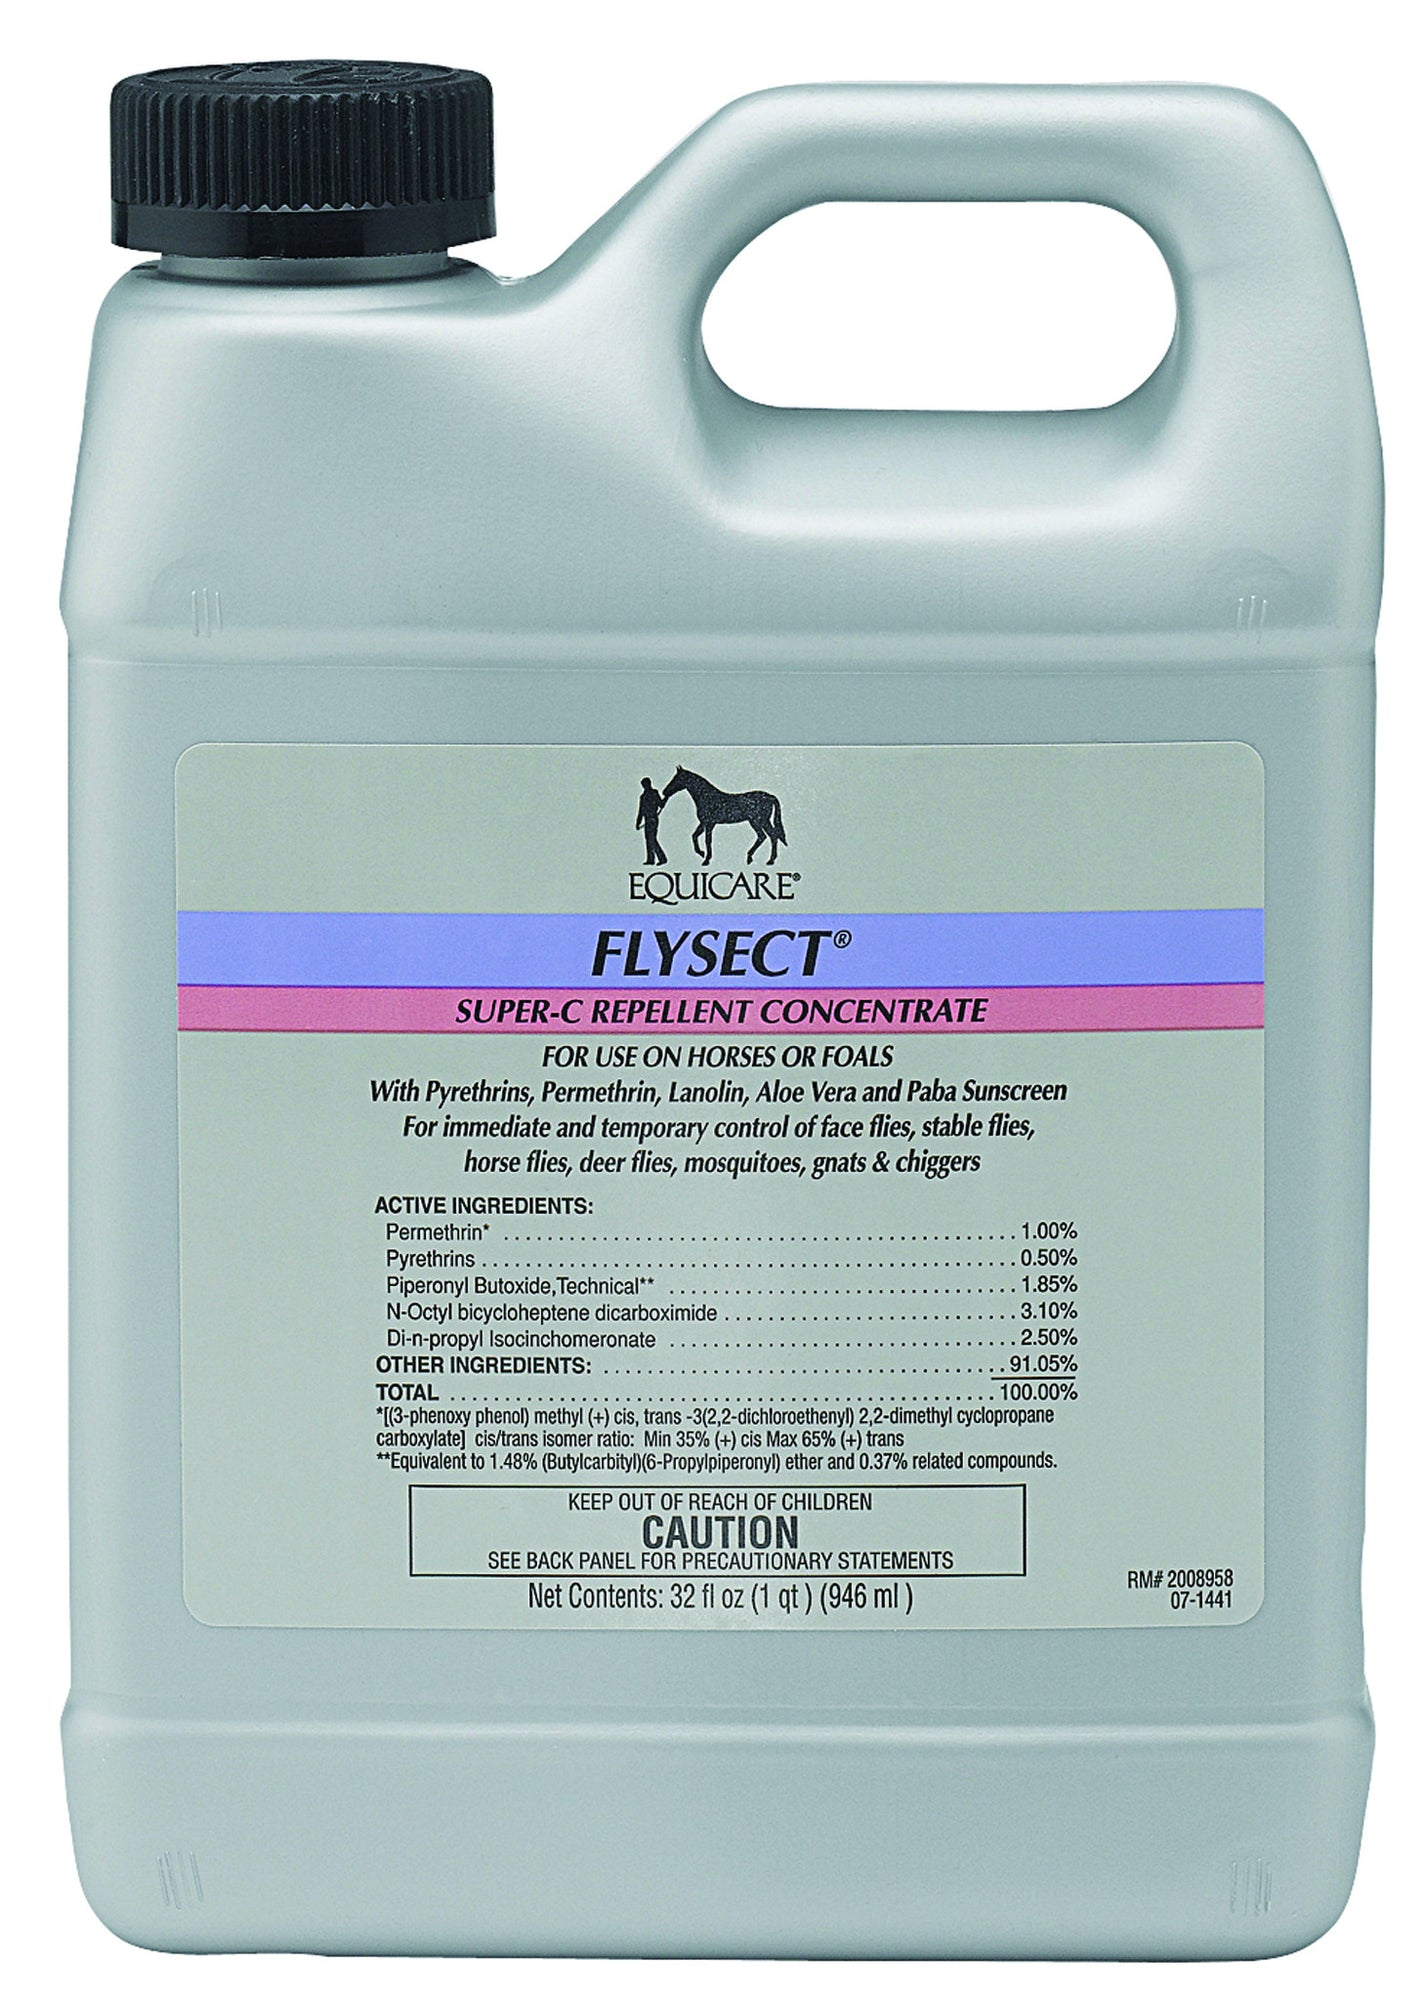 Equicare Flysect Super-C Repellent Concentrate